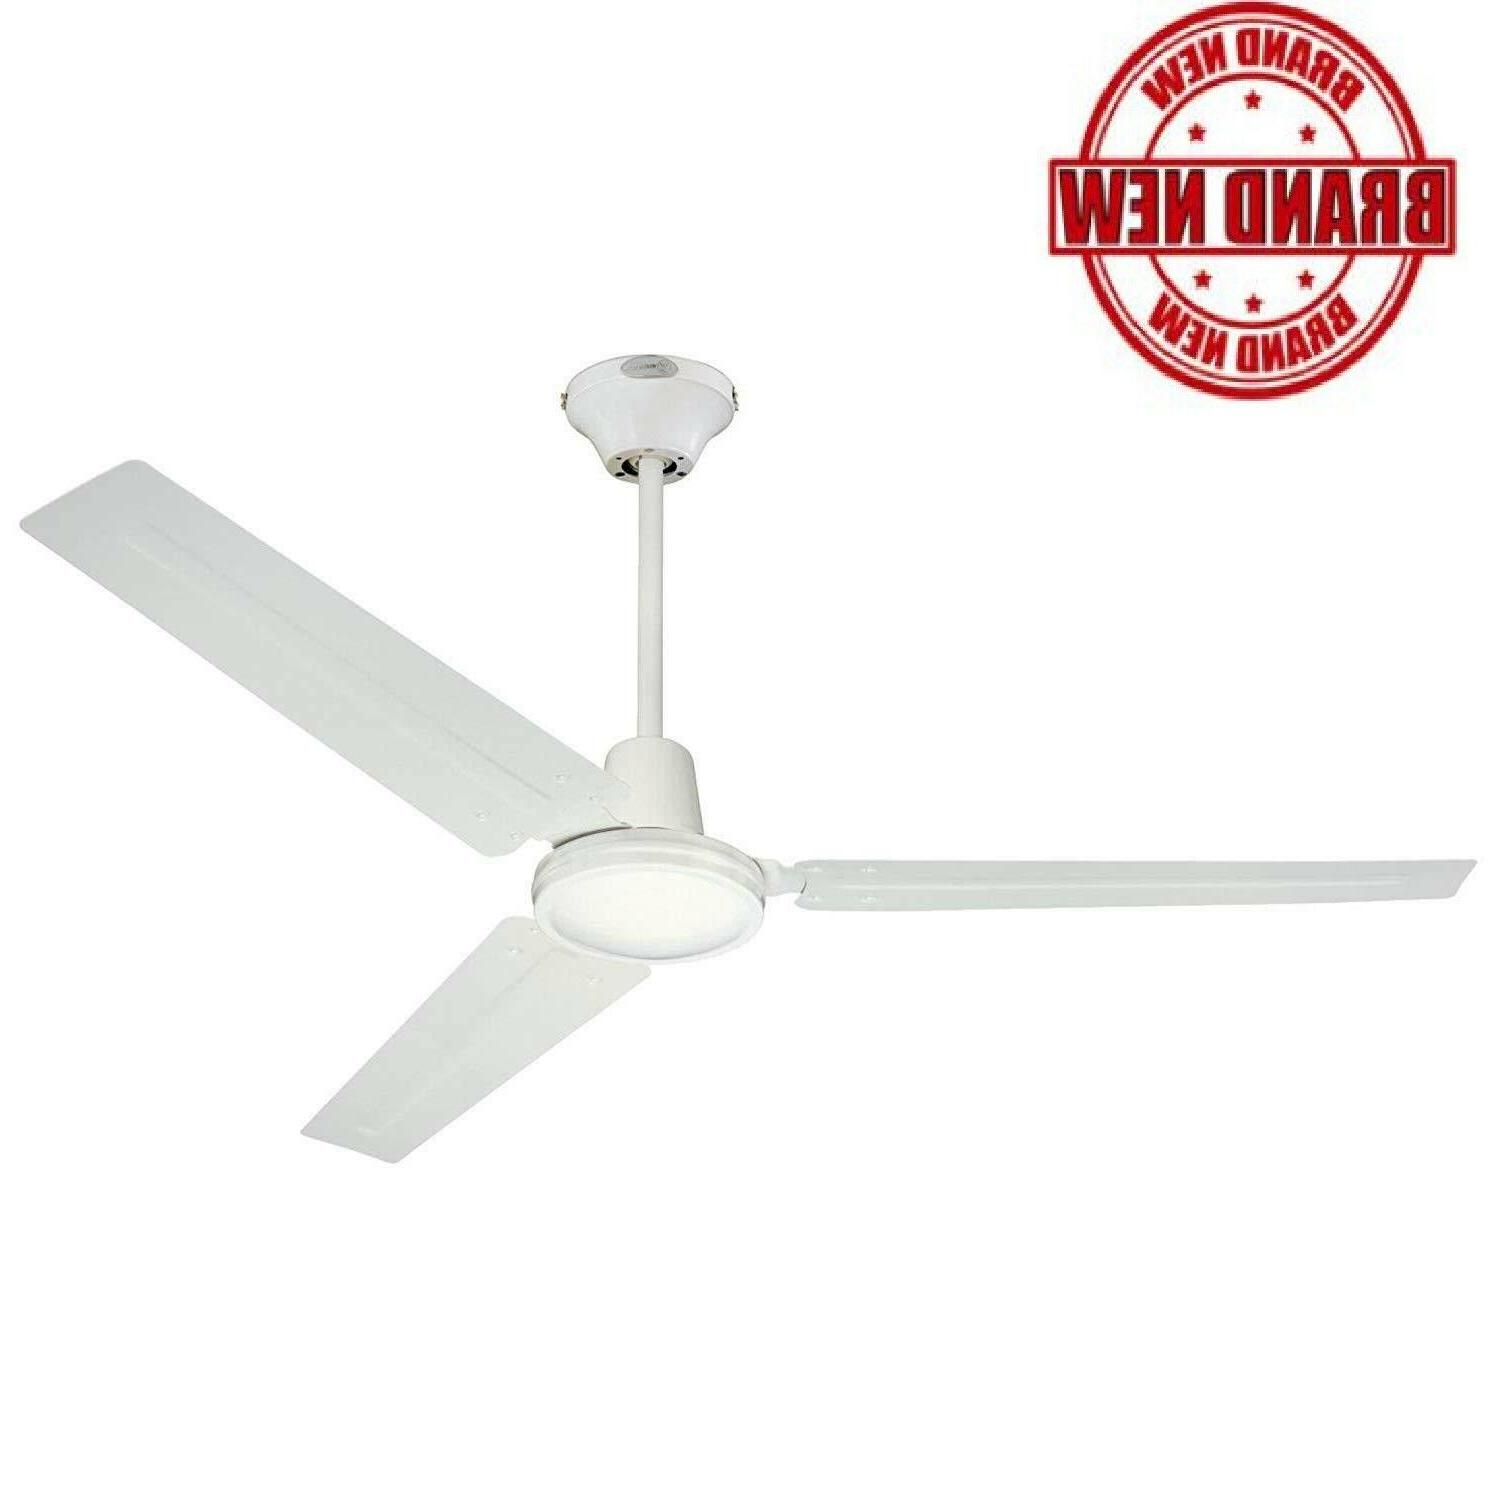 Garage Workshop Fan Large Ceiling Fan Heavy Duty Best Garage